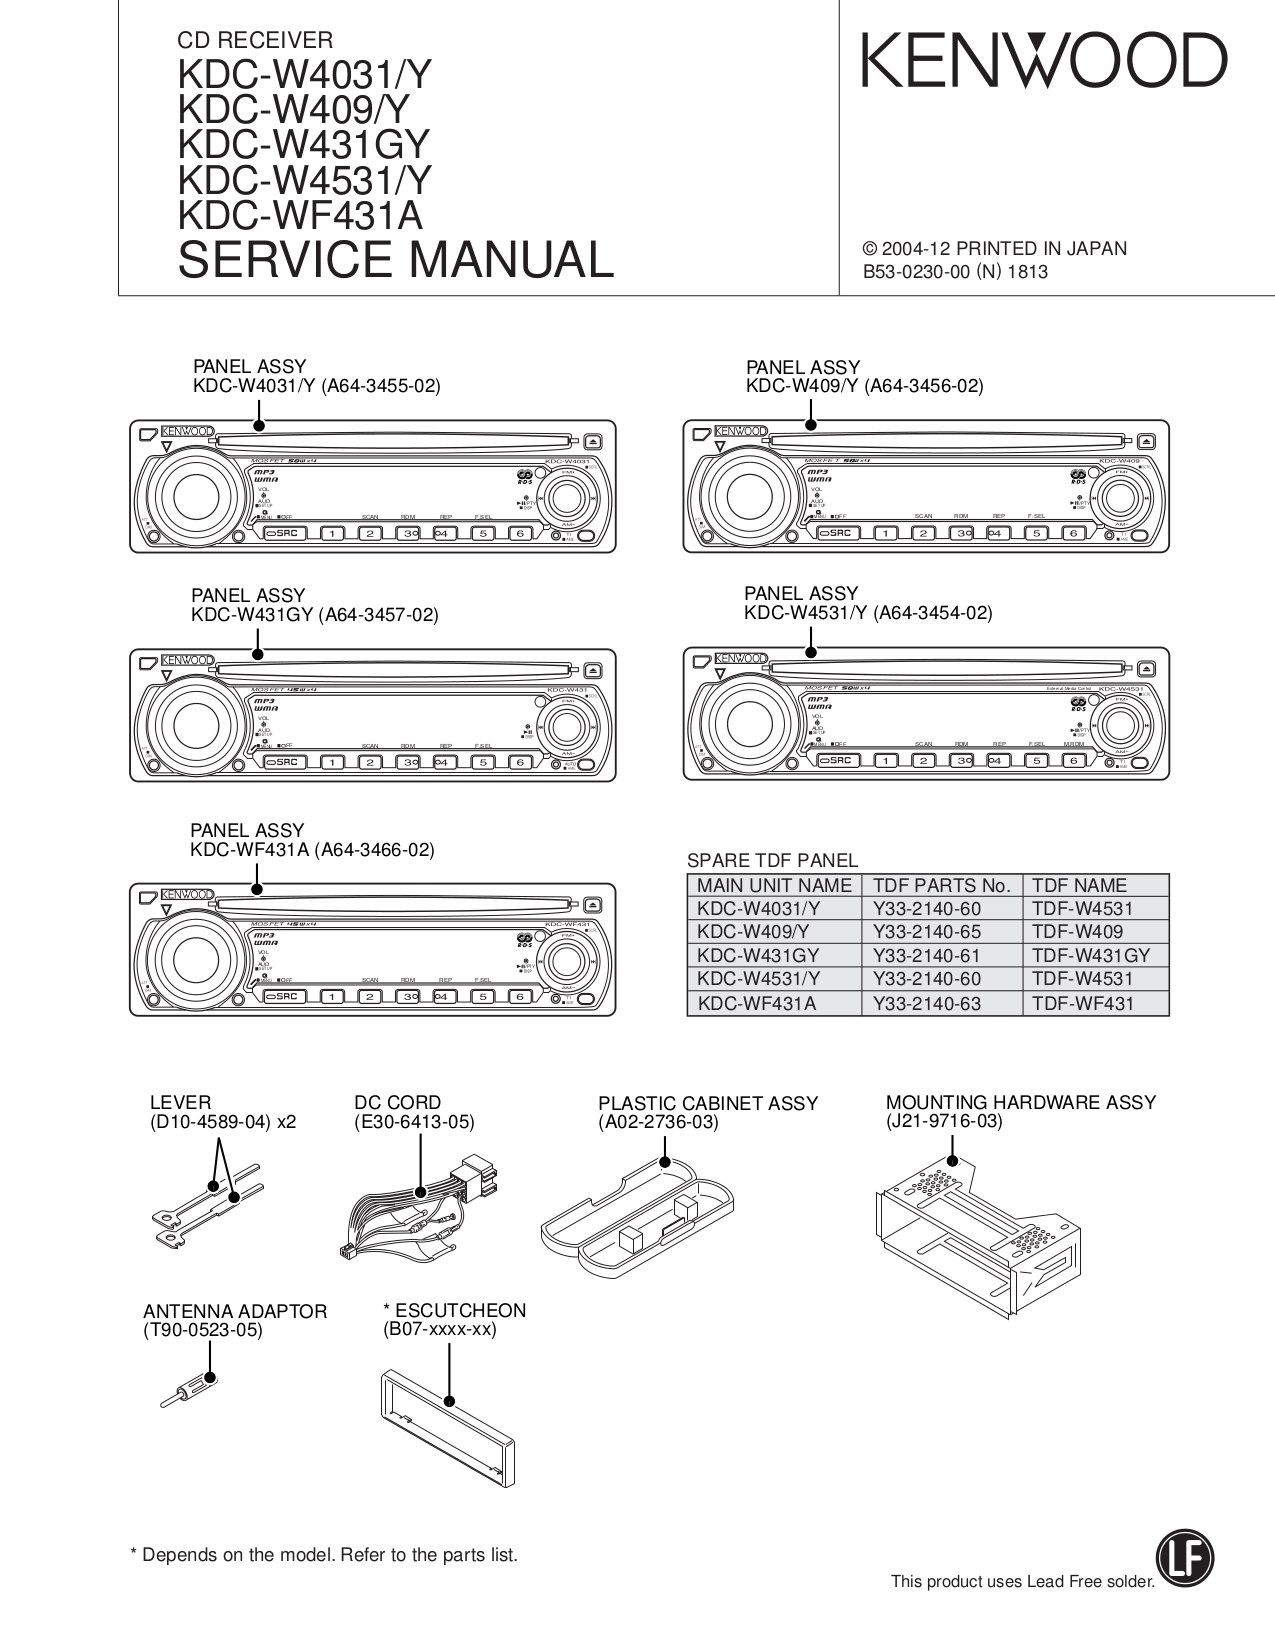 KDC W4031_W409_W431GY_W4531_WF431A.pdf 0 download free pdf for kenwood kdc 319 car receiver manual kenwood kdc 319 wiring harness at virtualis.co